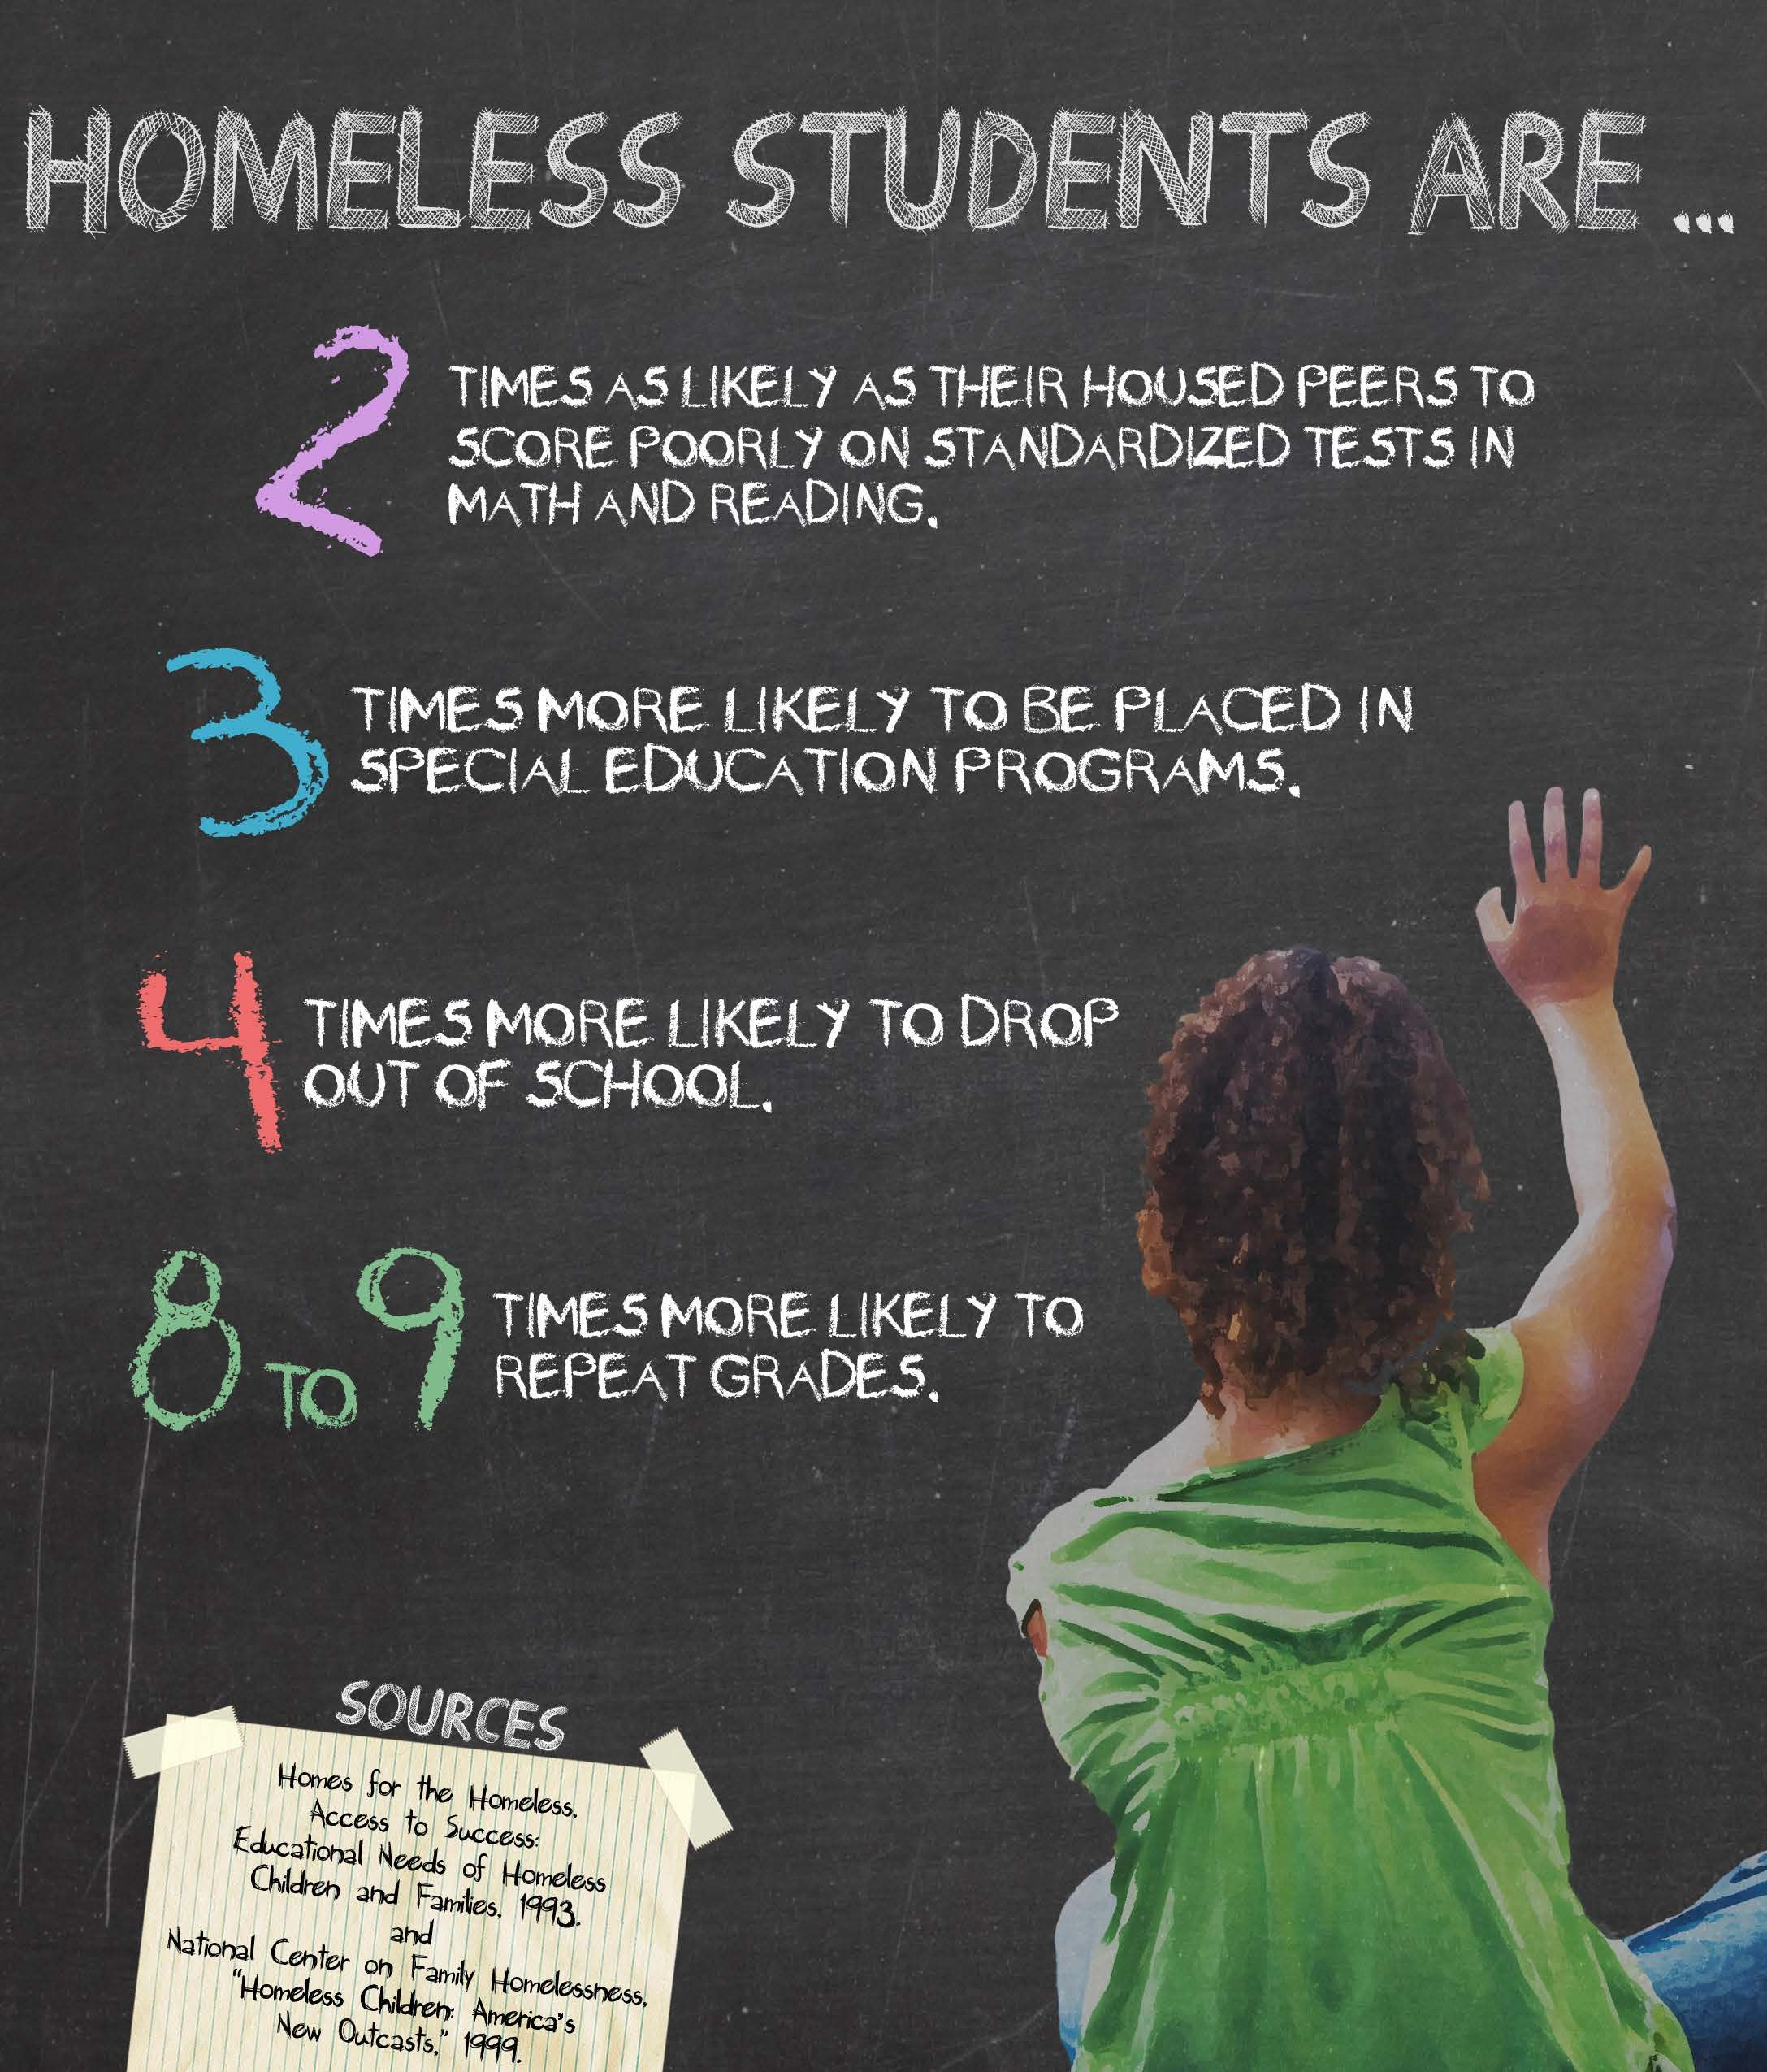 Homeless students have the same right to a quality